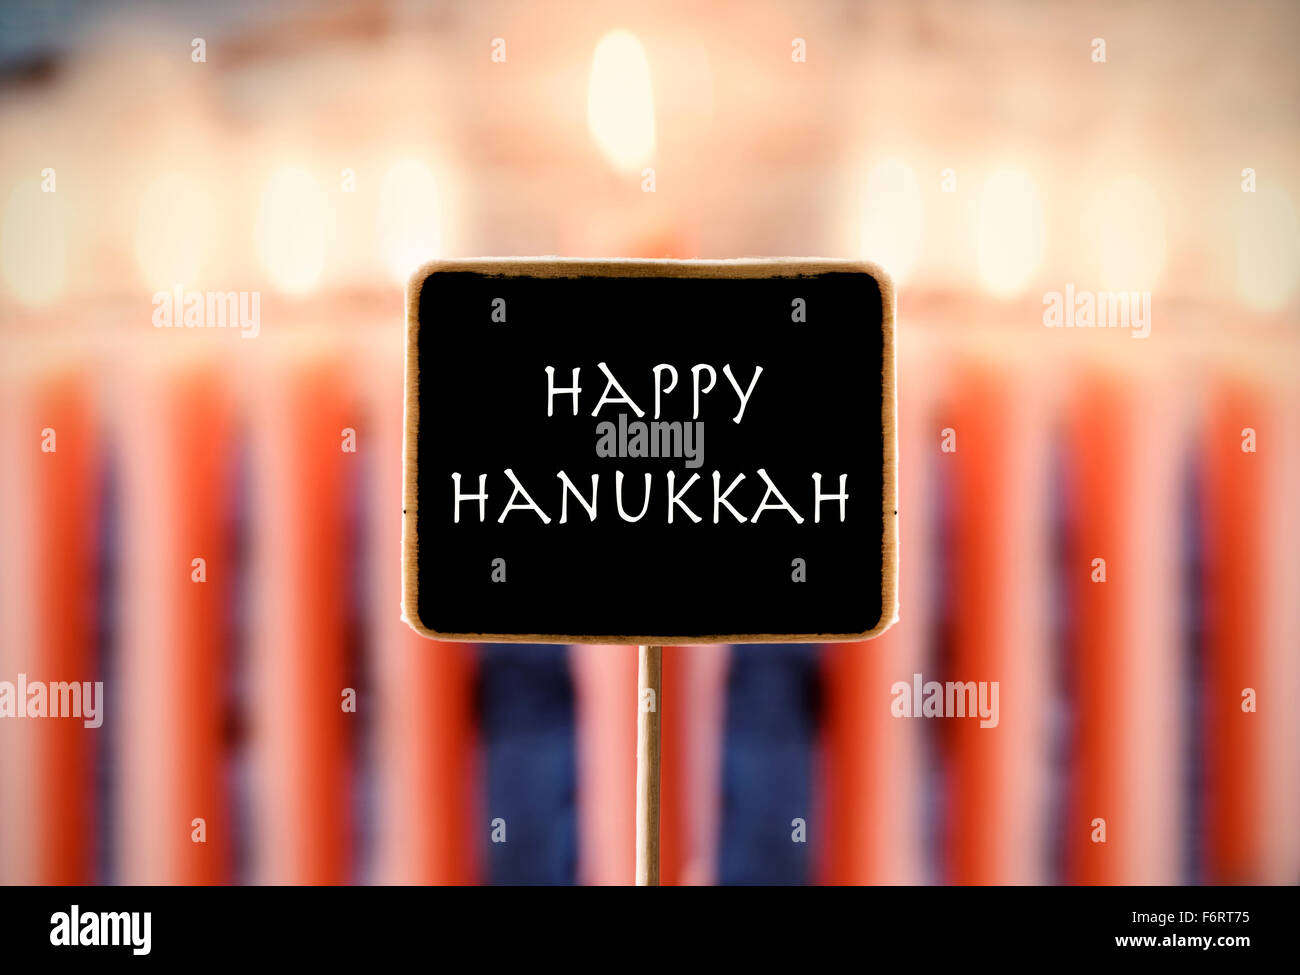 closeup of a chalkboard with text happy Hanukkah and a menorah with nine lit candles in the background - Stock Image